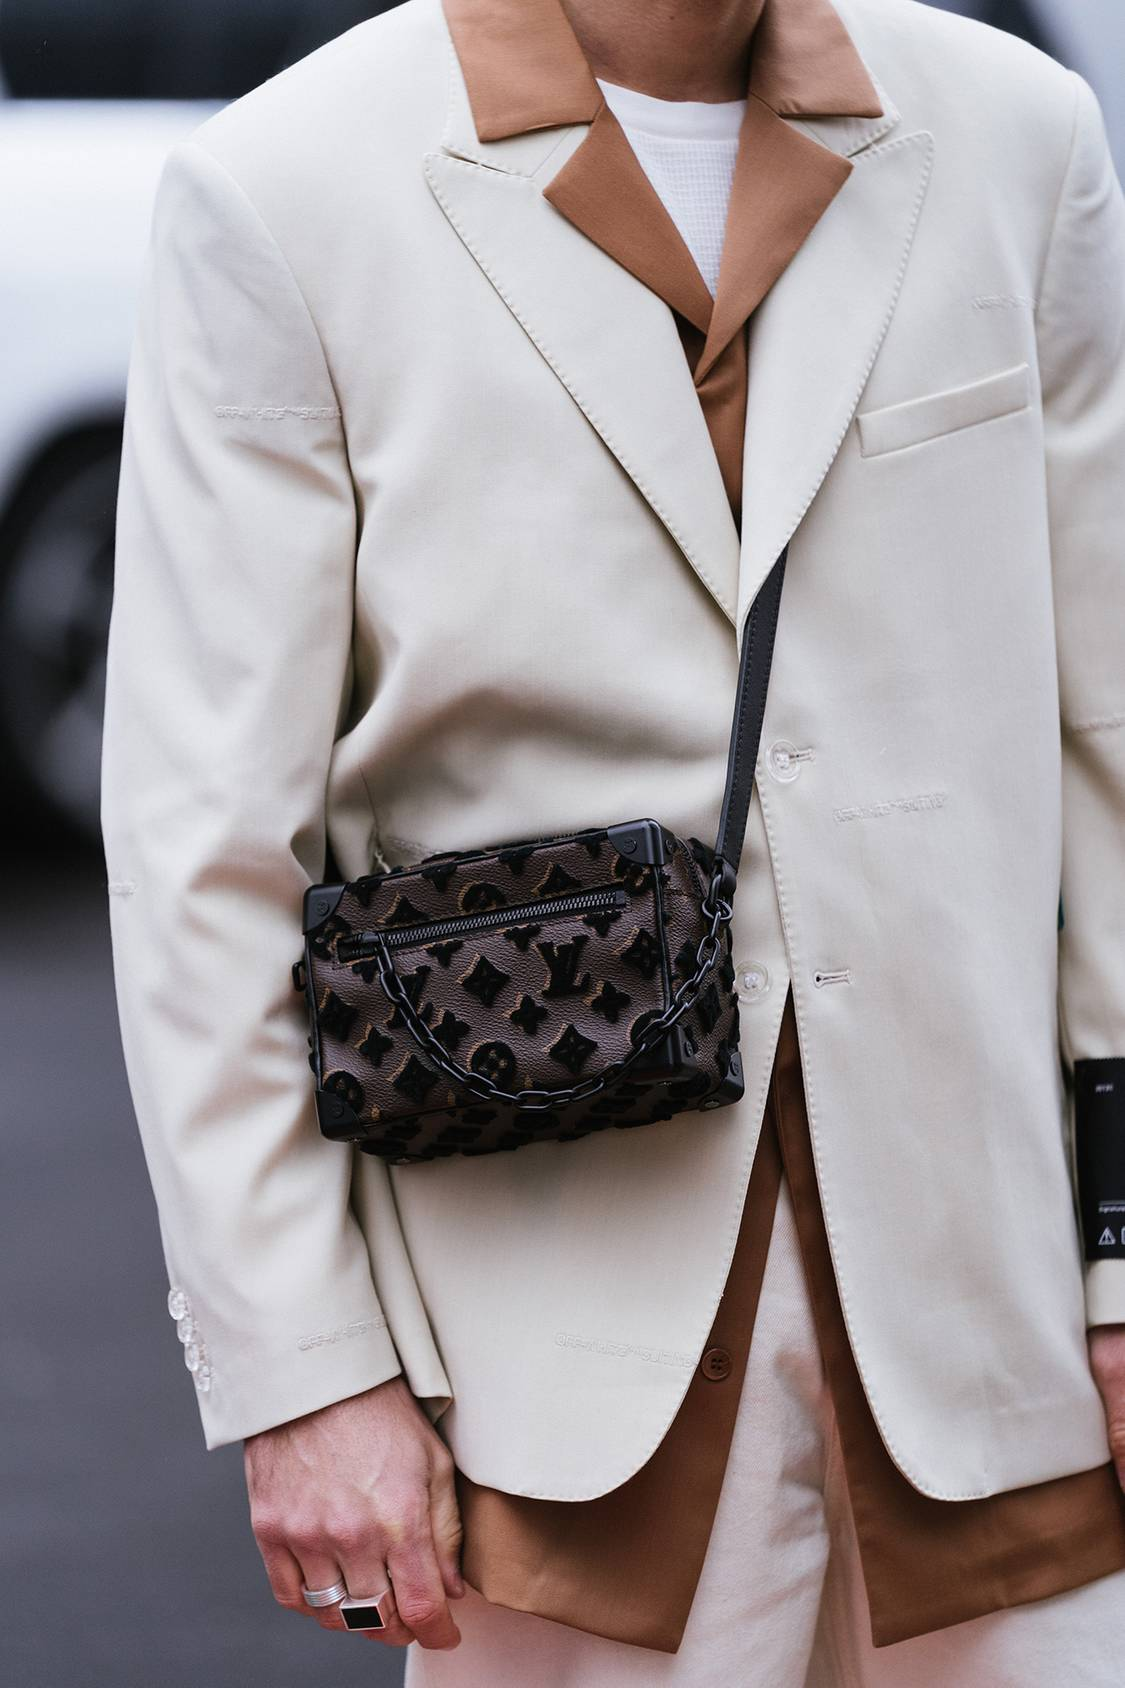 NYFW FW20 Best Bag Trends